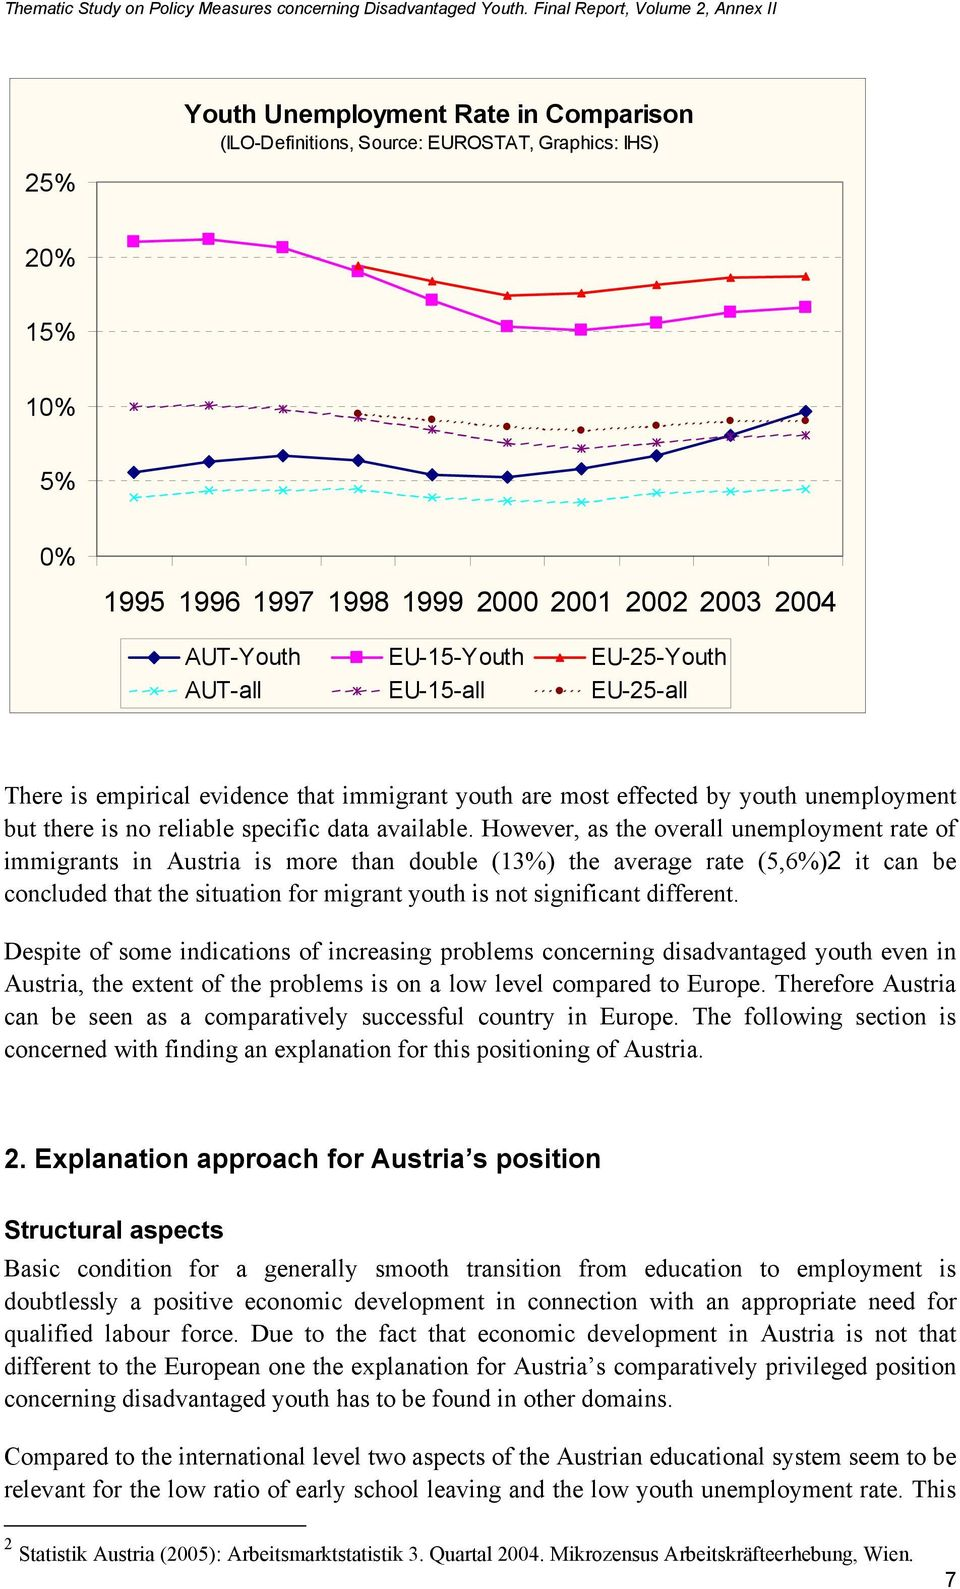 However, as the overall unemployment rate of immigrants in Austria is more than double (13%) the average rate (5,6%)2 it can be concluded that the situation for migrant youth is not significant